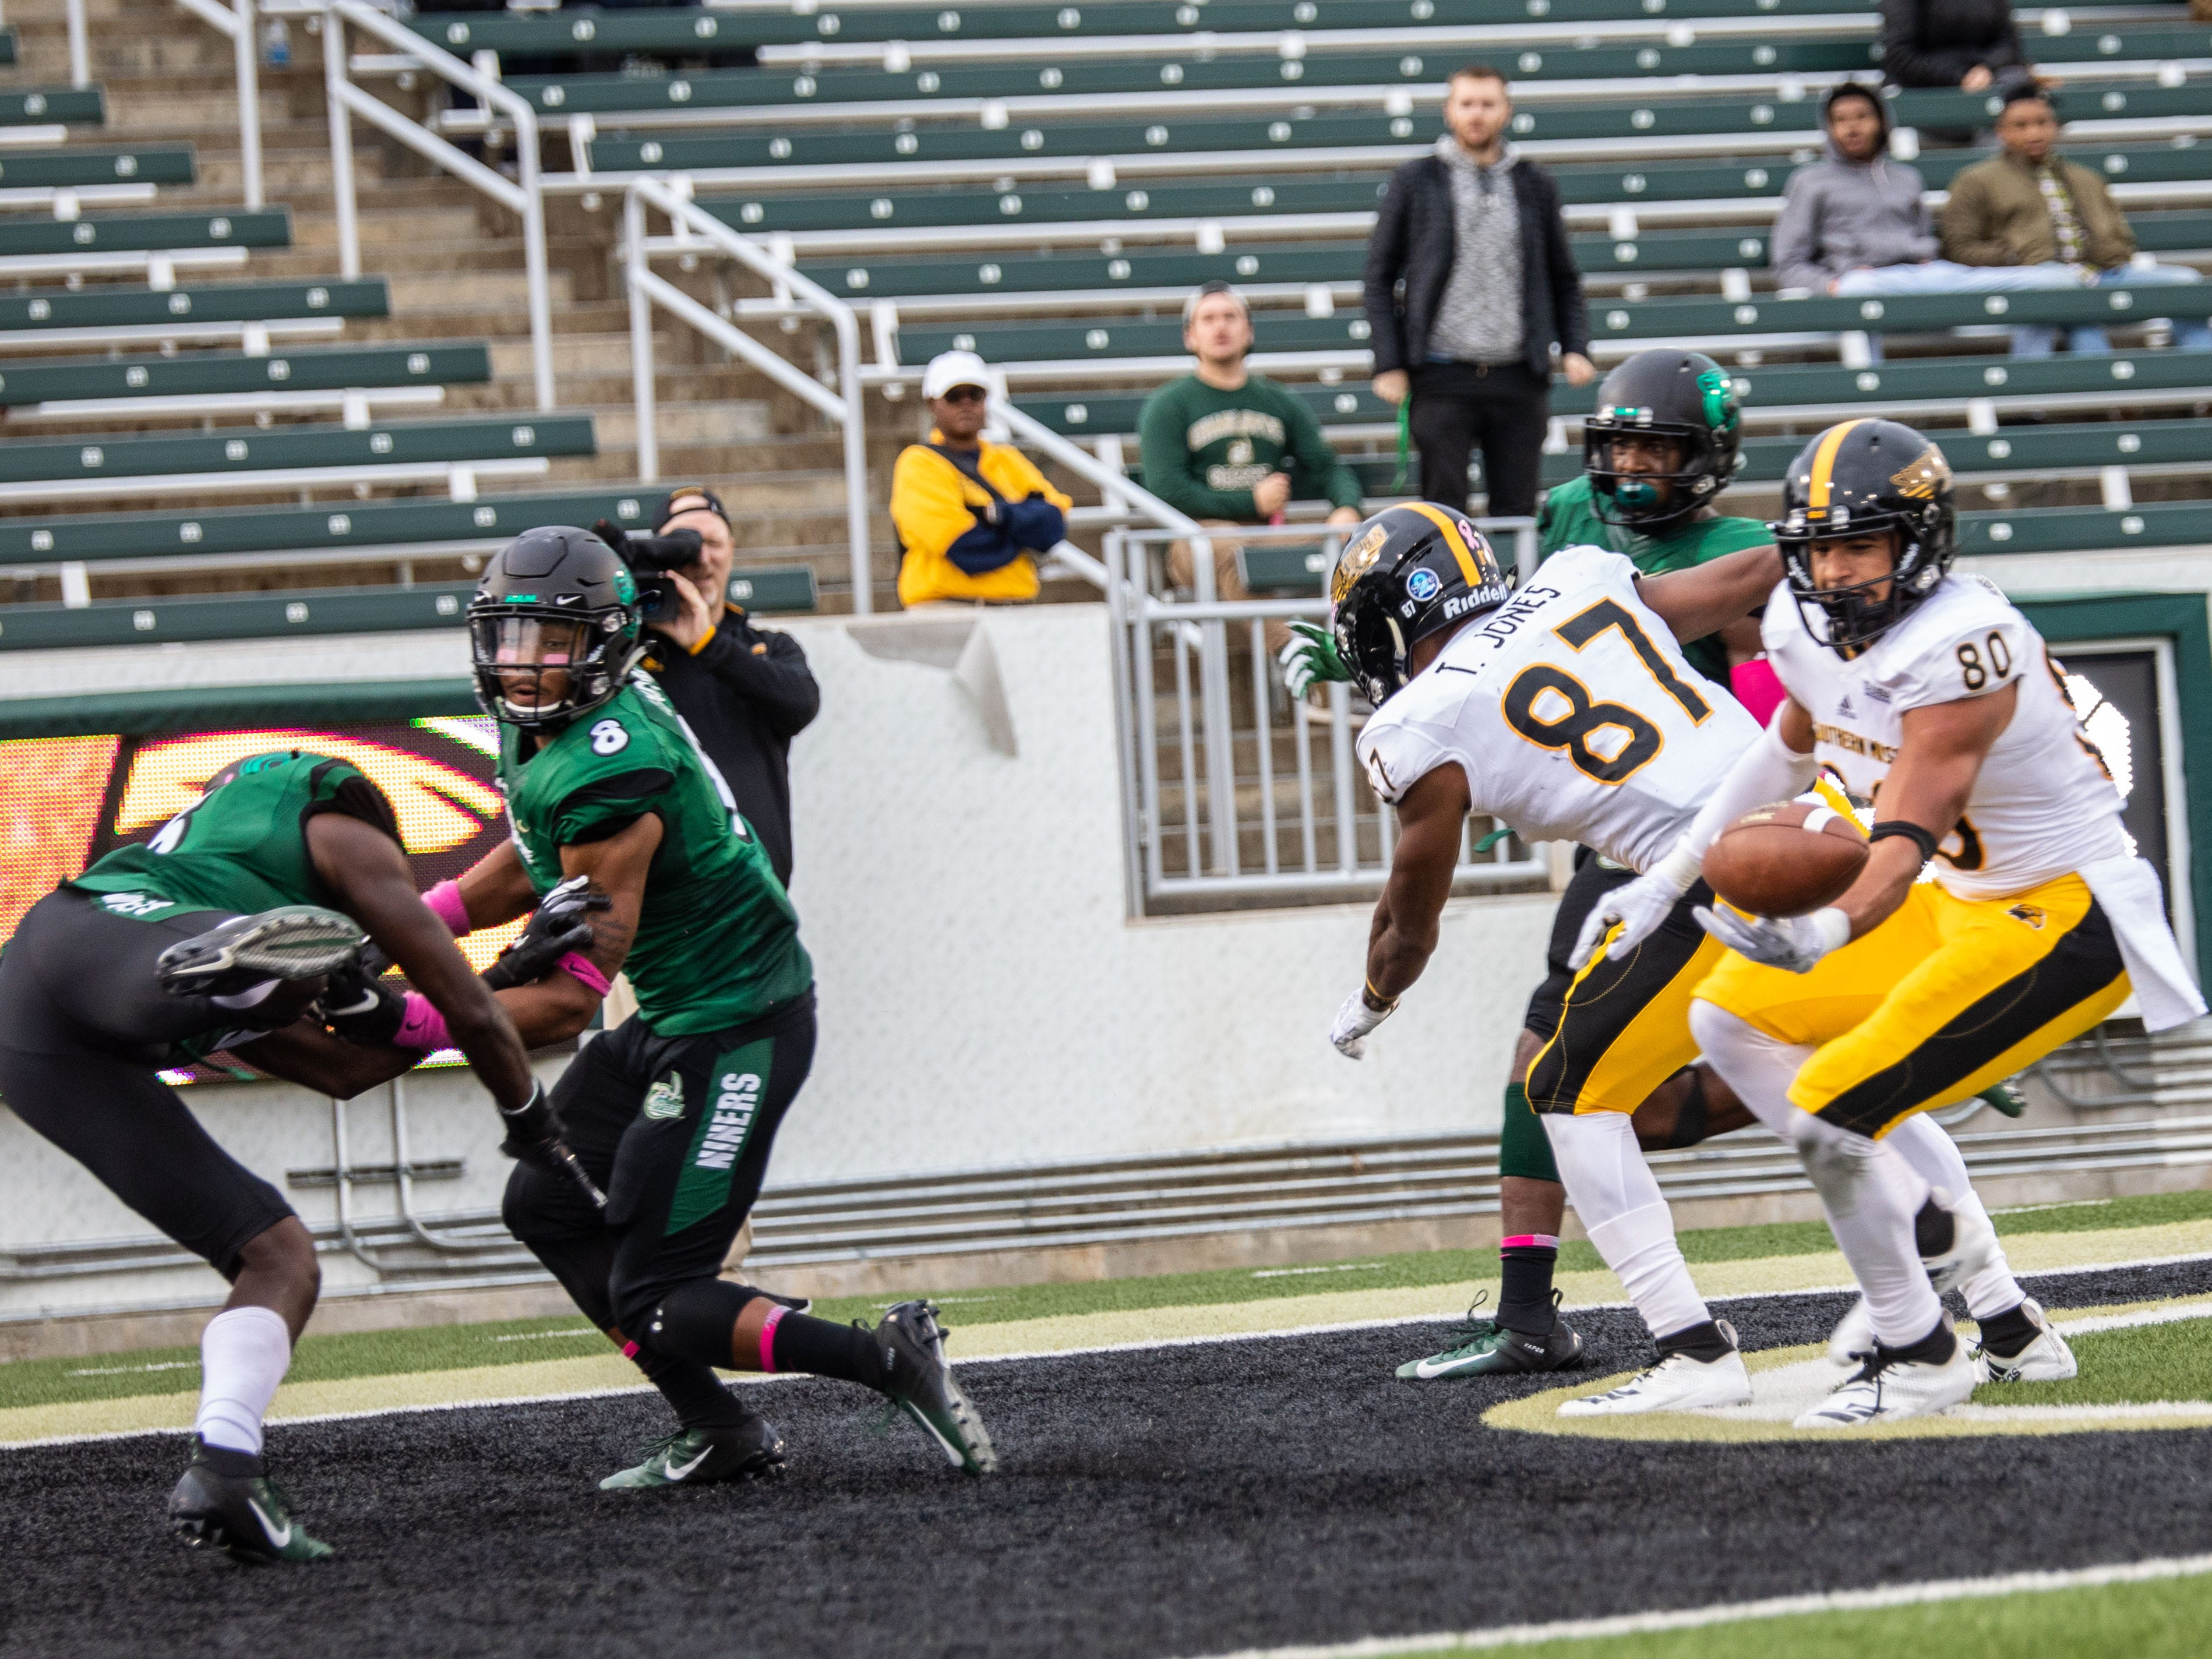 Southern Miss receiver Jordan Mitchell (80) tries to bring in a pass after a deflection in the end zone Saturday in Charlotte, N.C.